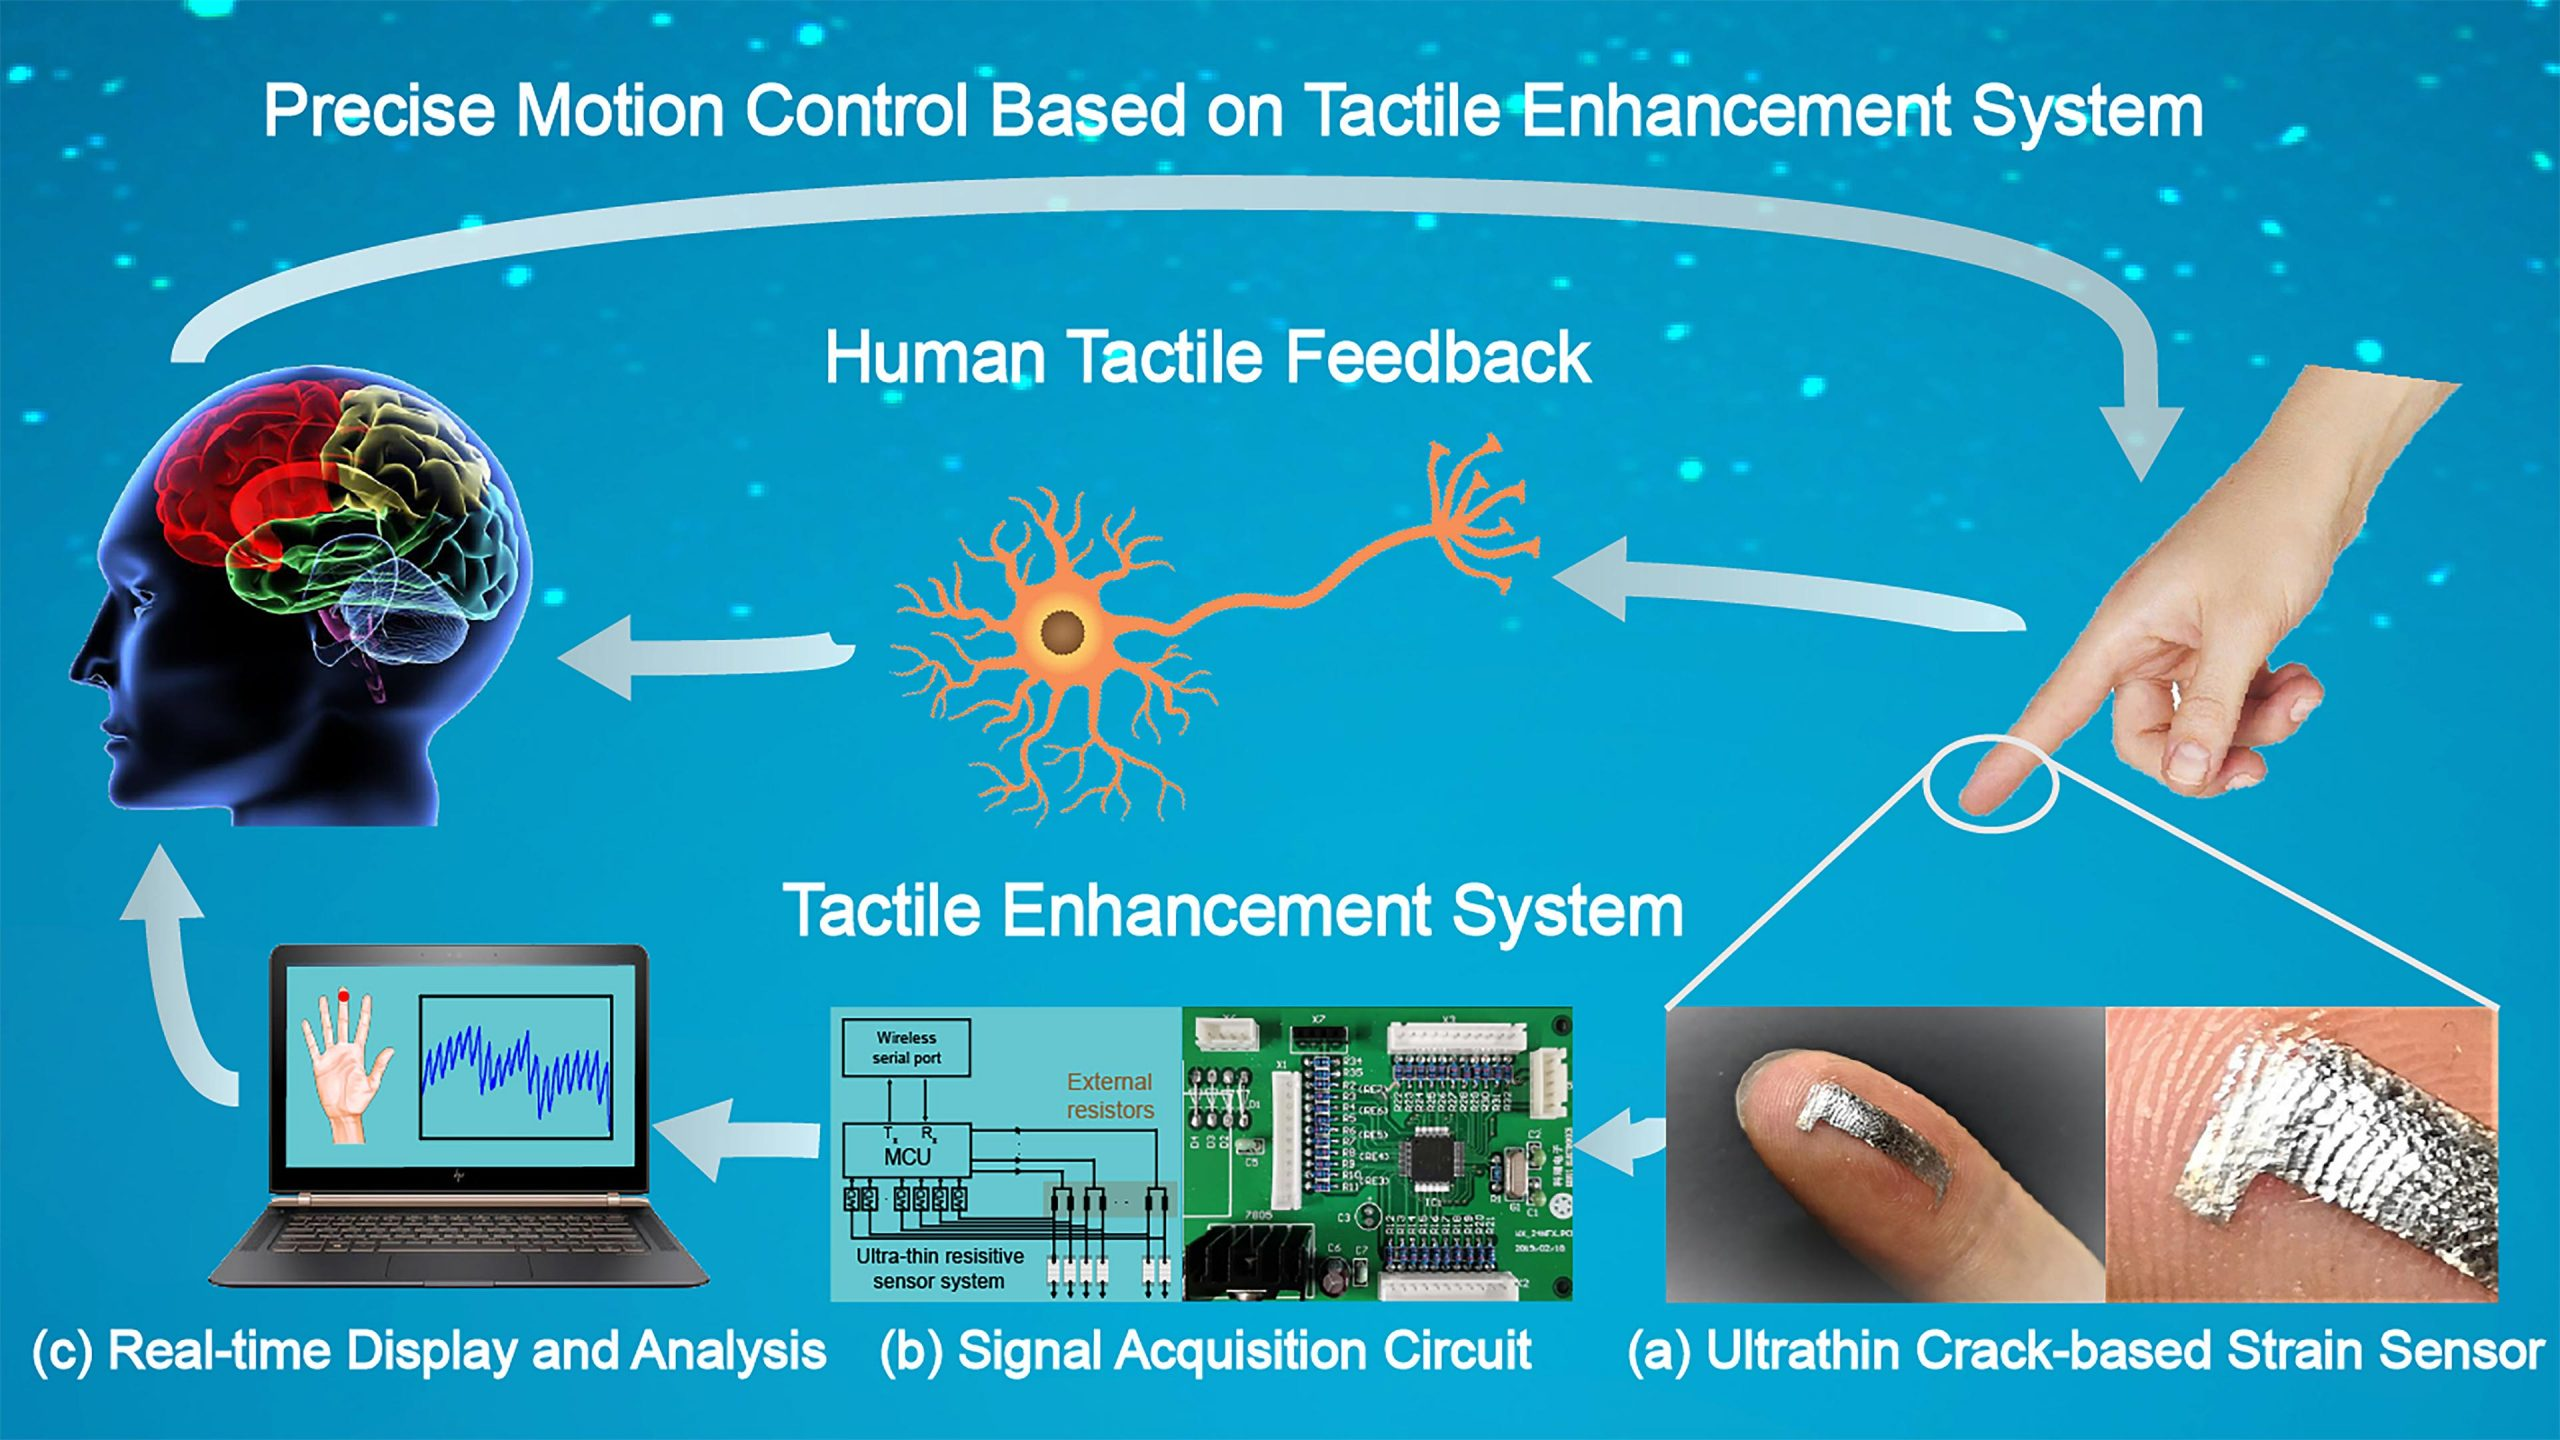 Bionic Tactile Enhancement – Highly Sensitive Sensors Inspired by Spiders Improve Sense of Touch - SciTechDaily